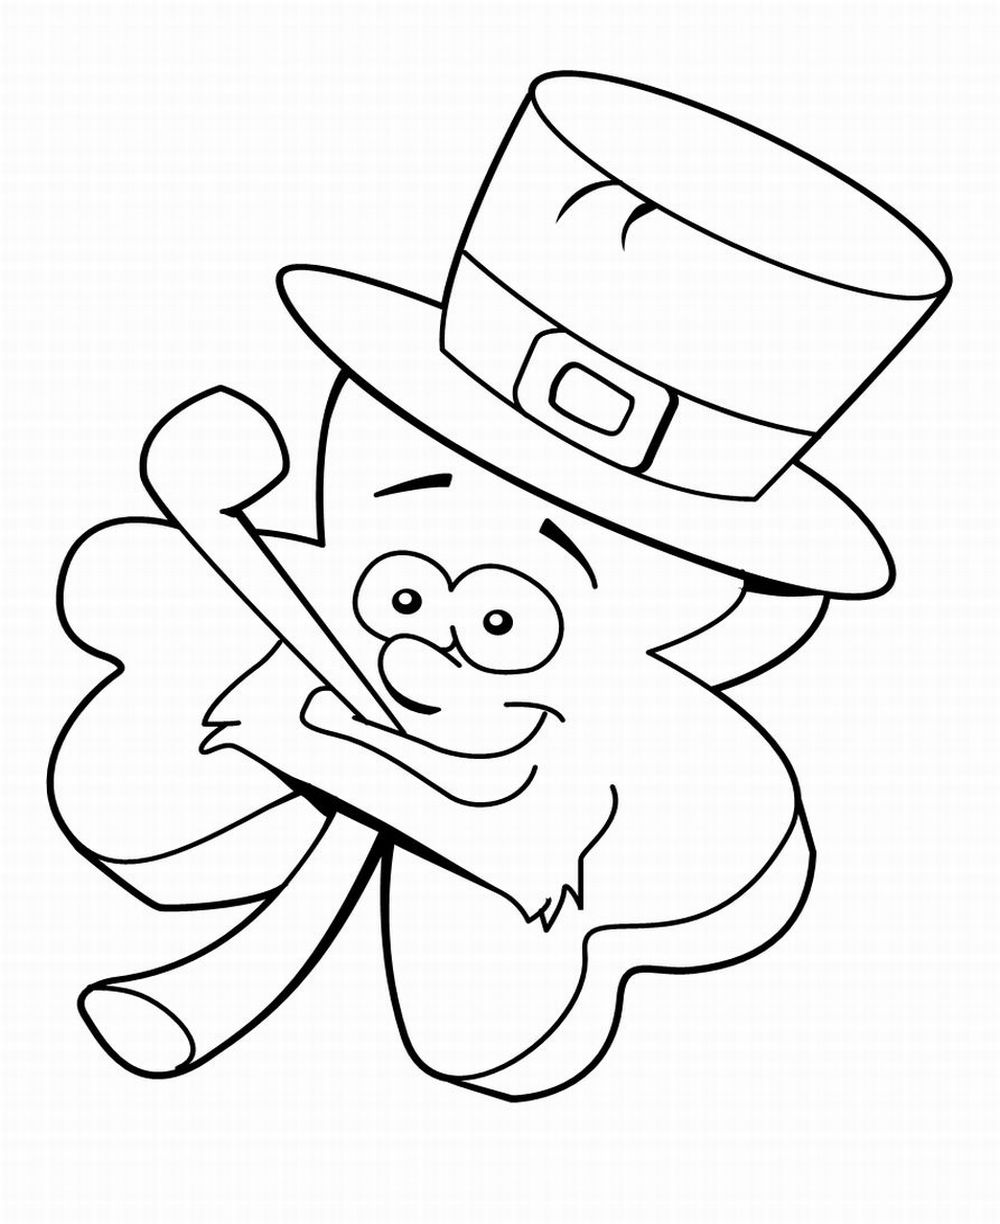 leprechaun coloring pages - St Patrick's Day Leprechaun Free Printable Coloring Pages